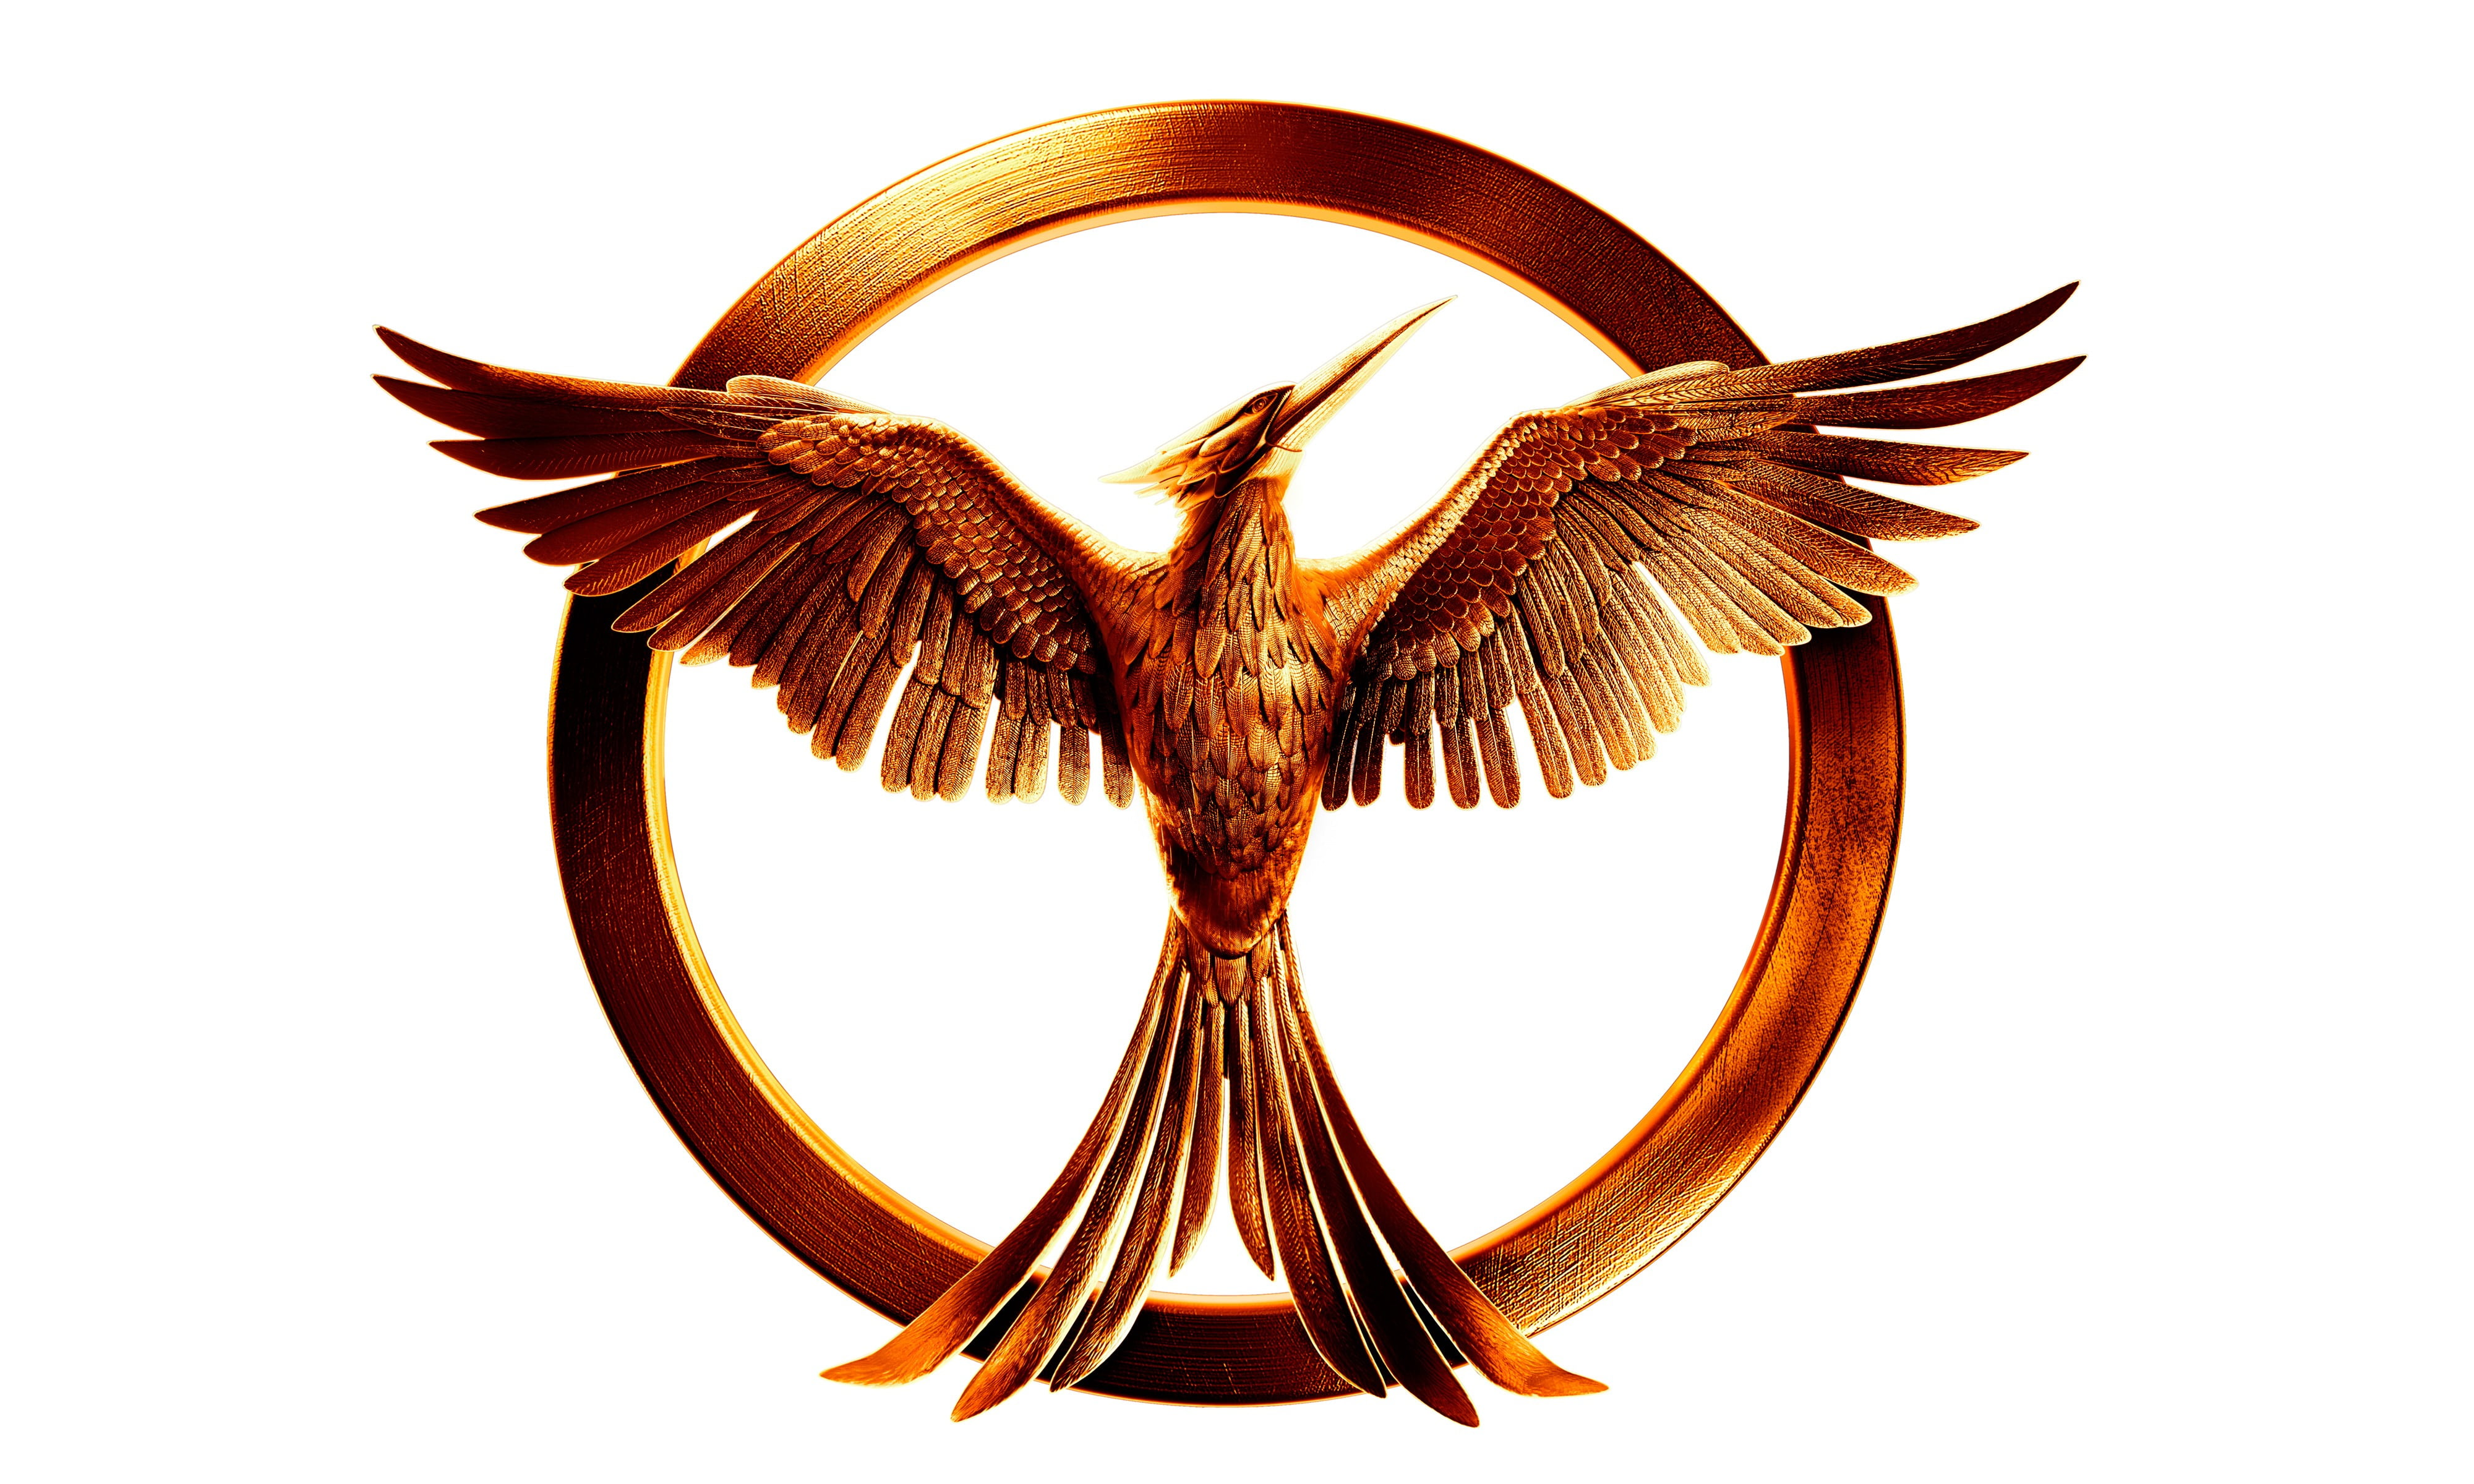 Brass Colored Mockingjay Symbol The Hunger Games Movies